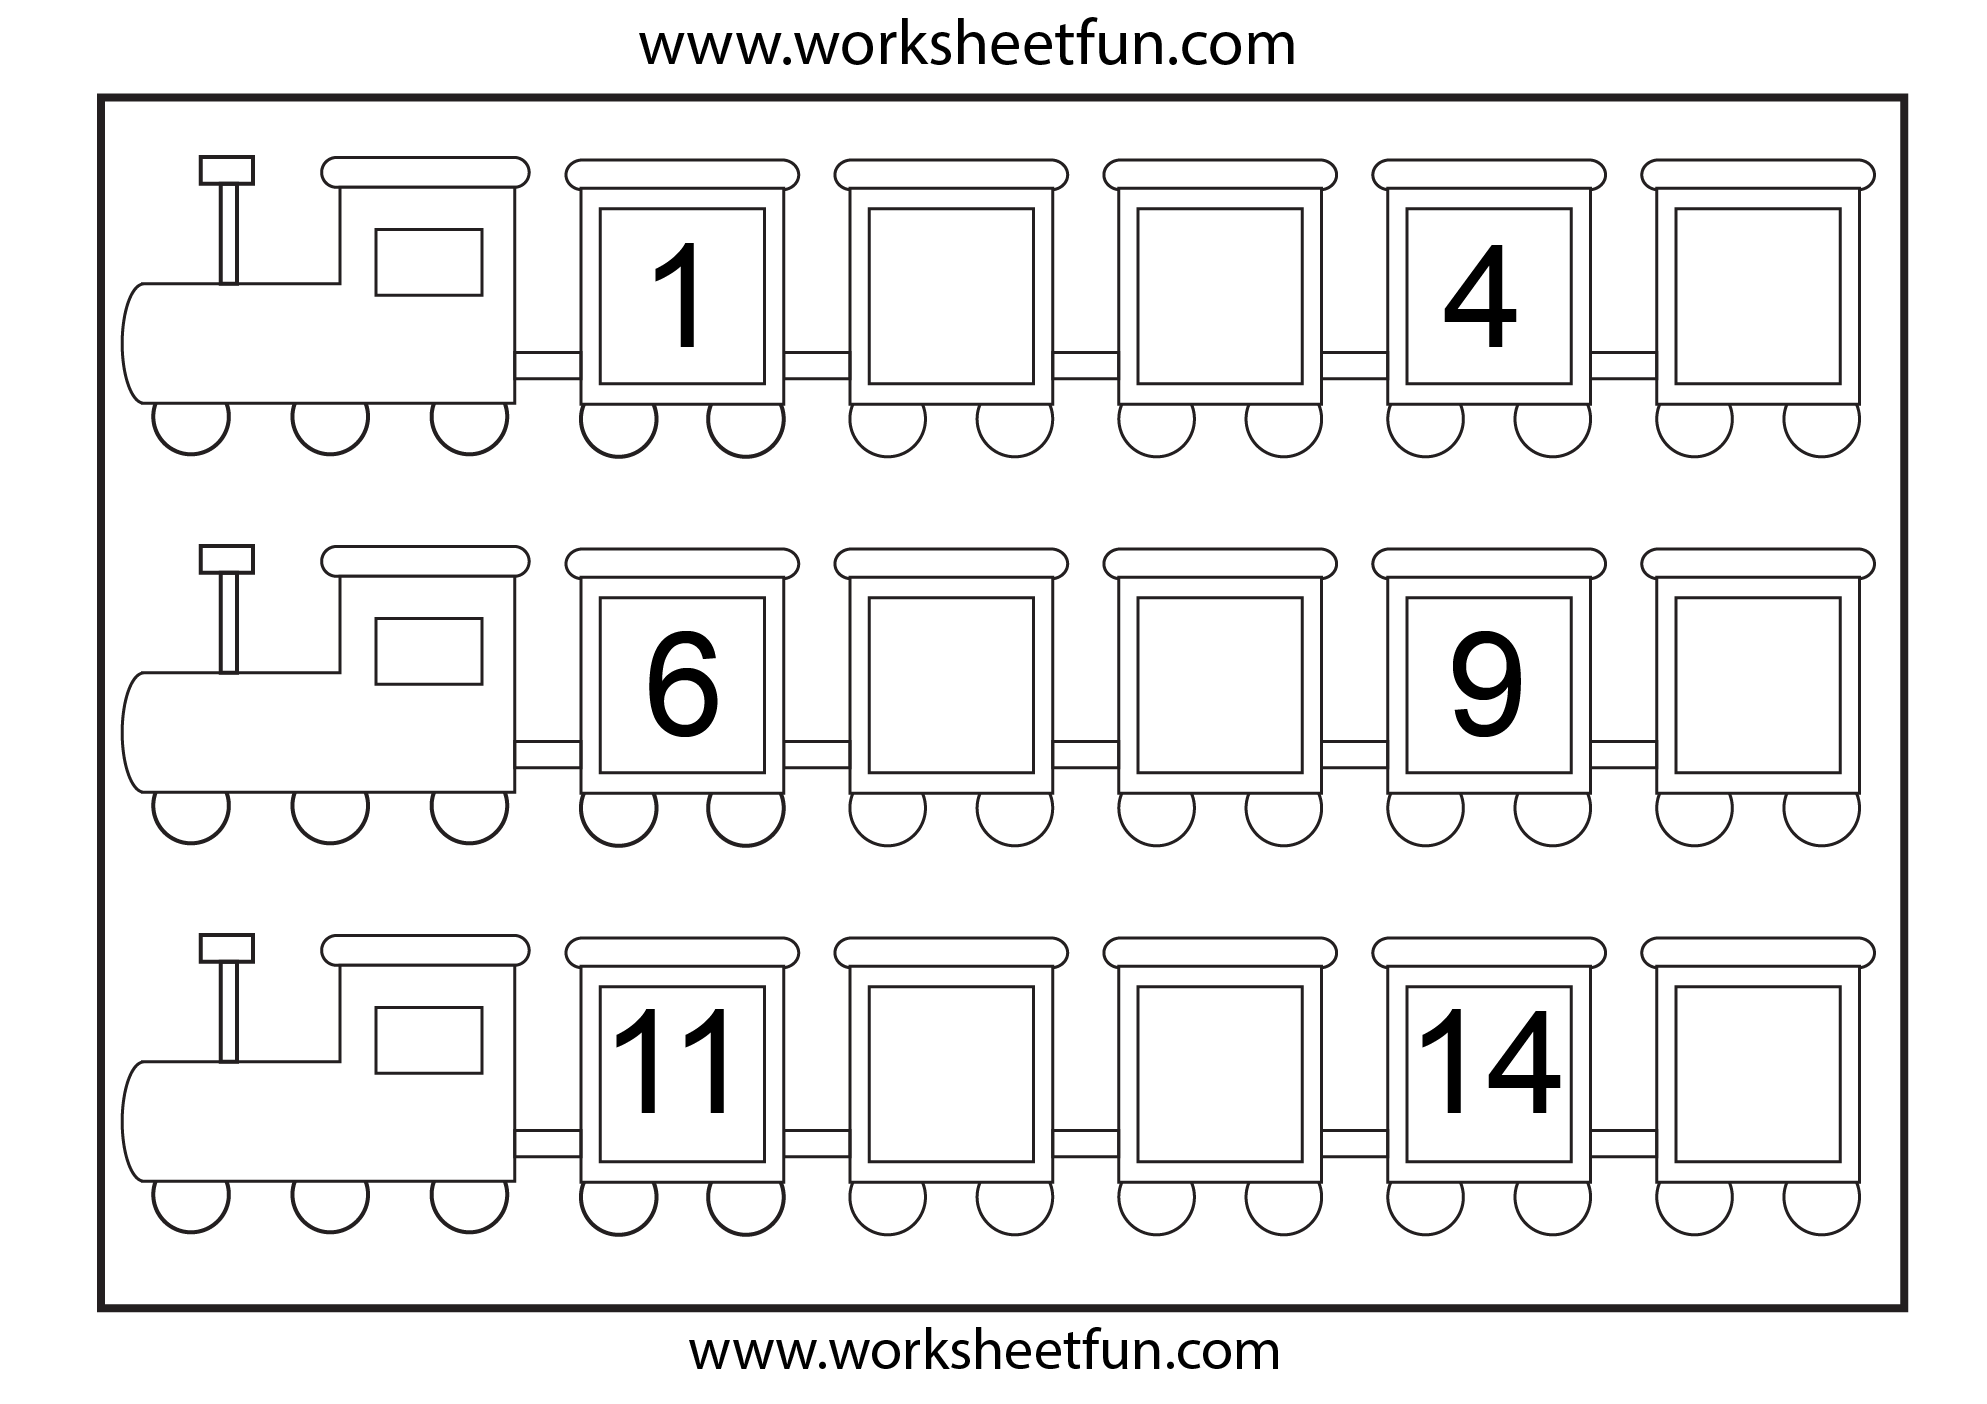 preschool missing number worksheets  number train  missing numbers  preschool missing number worksheets  number train  missing numbers    worksheet   download